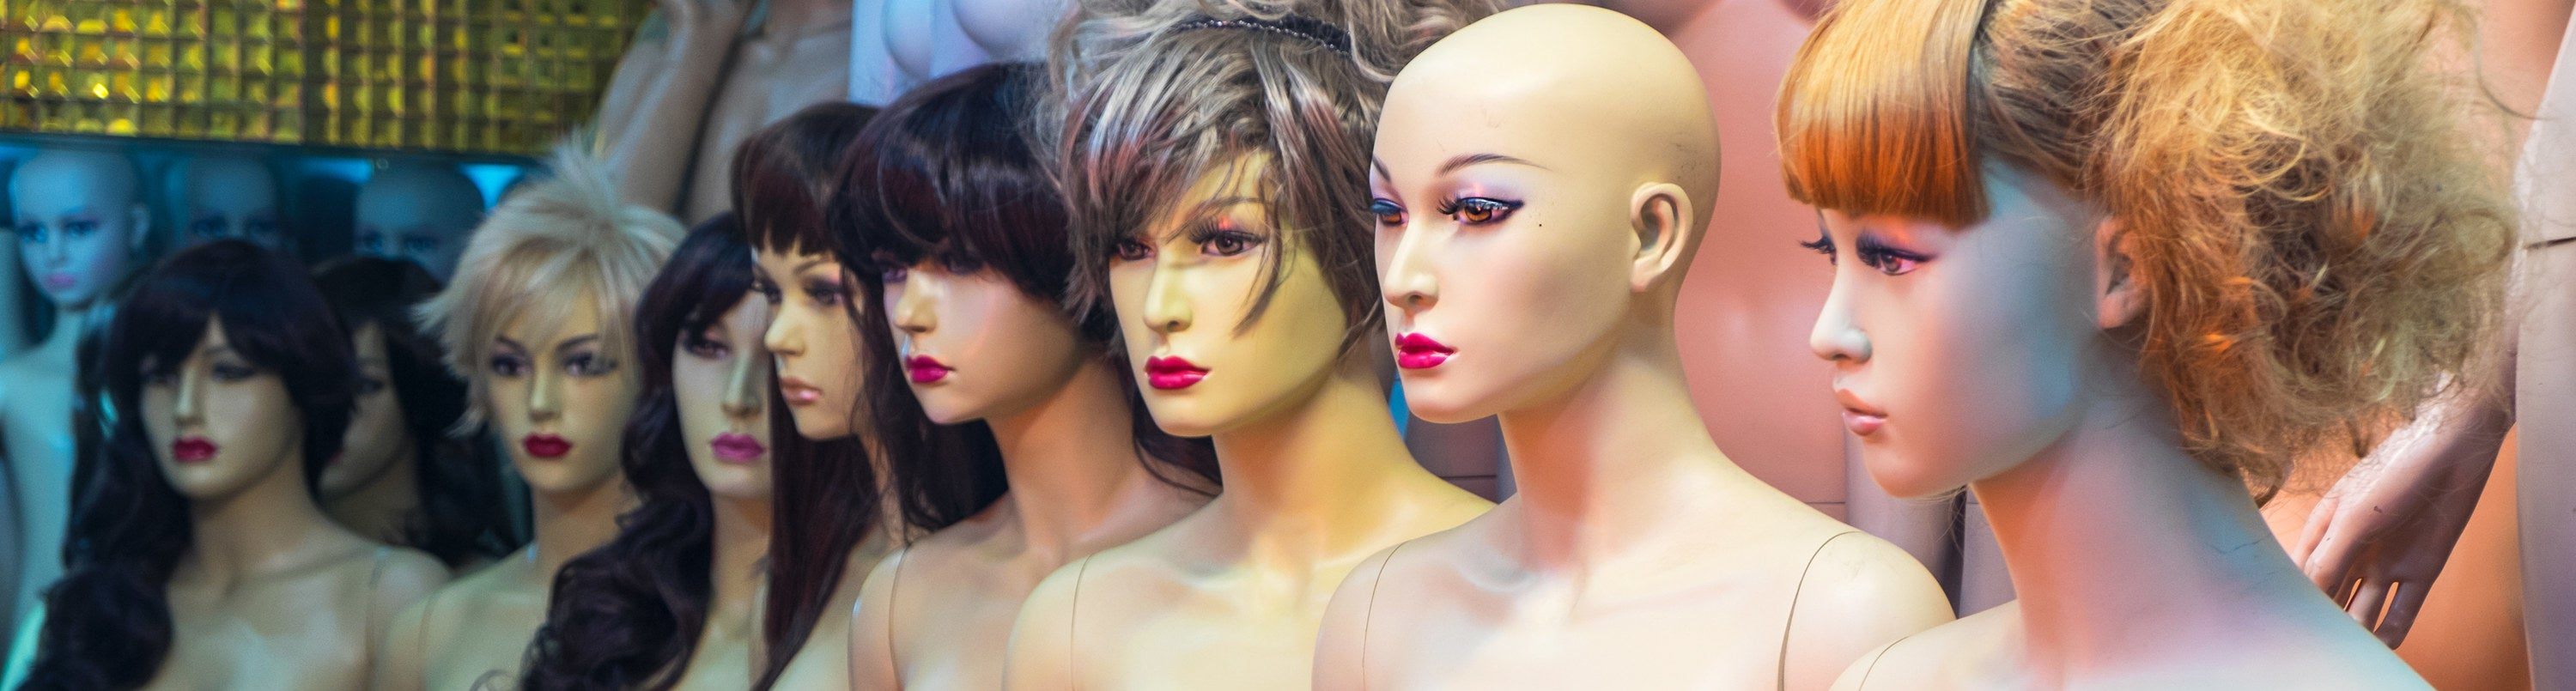 Several mannequin heads lined up in a row